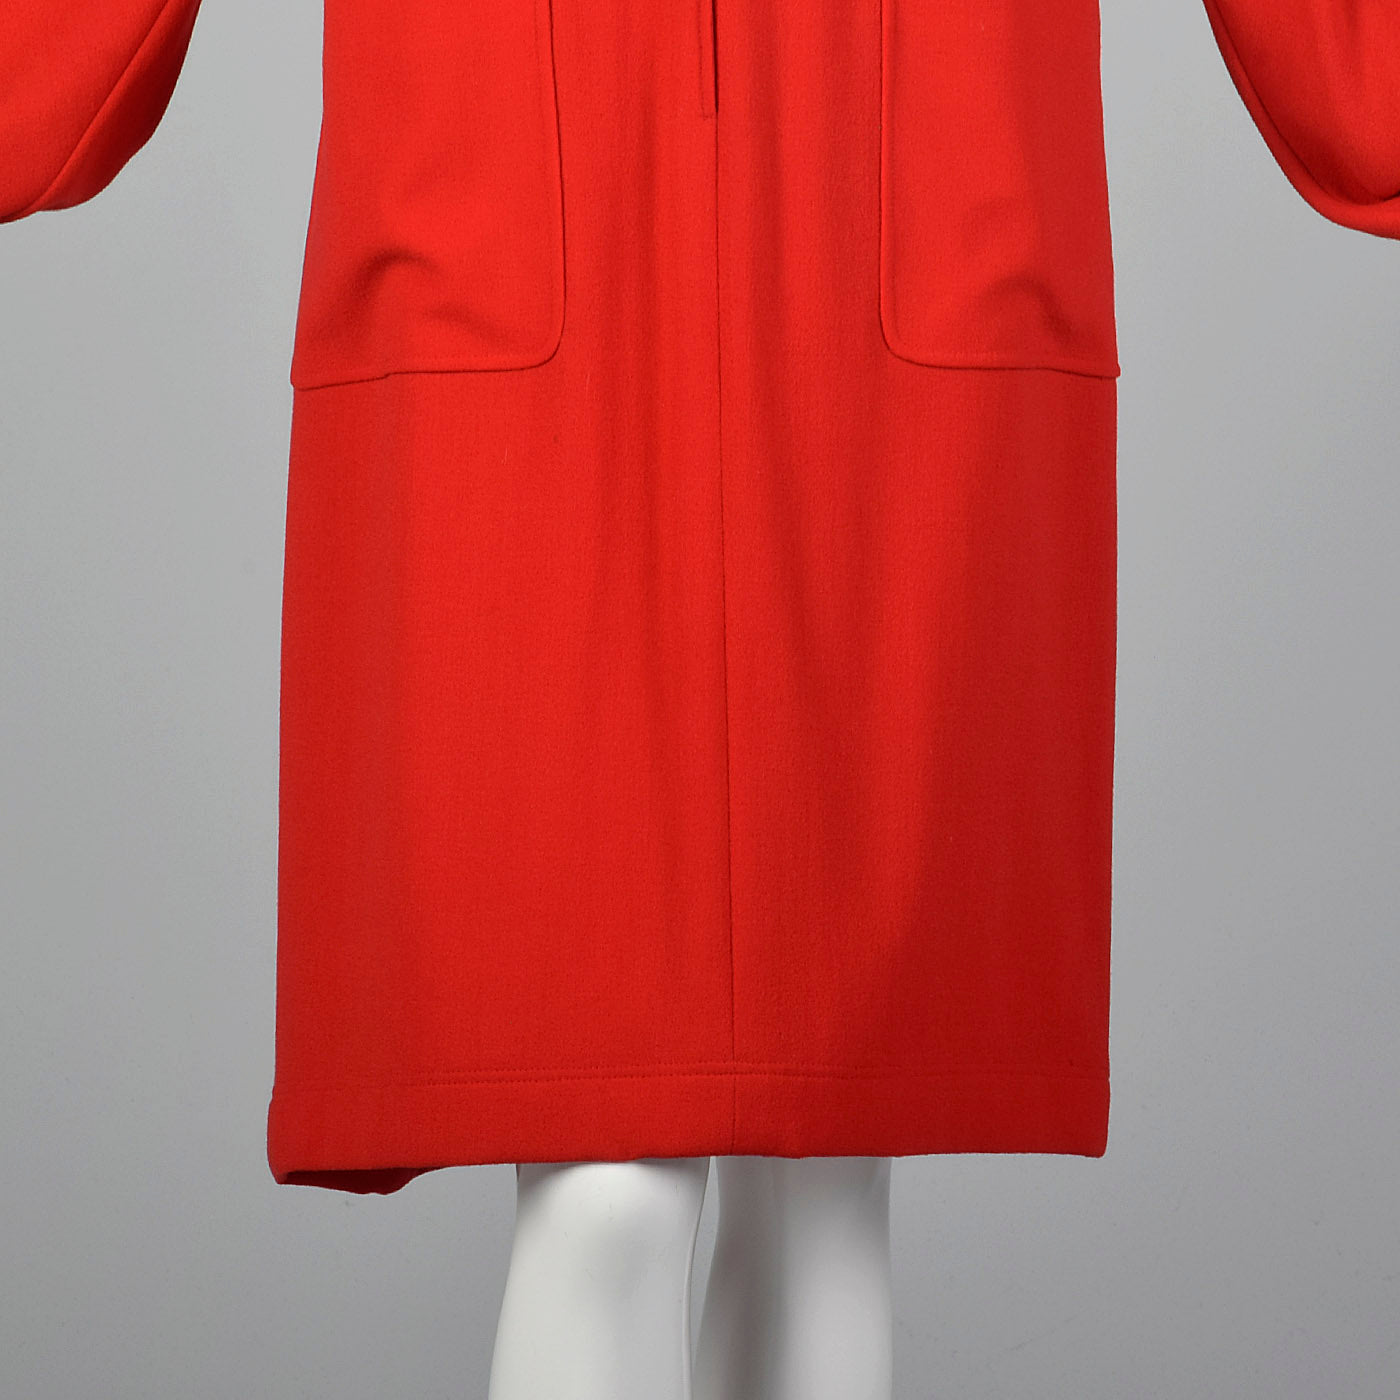 1980s Valentino Boutique Red Dress with Black Trim